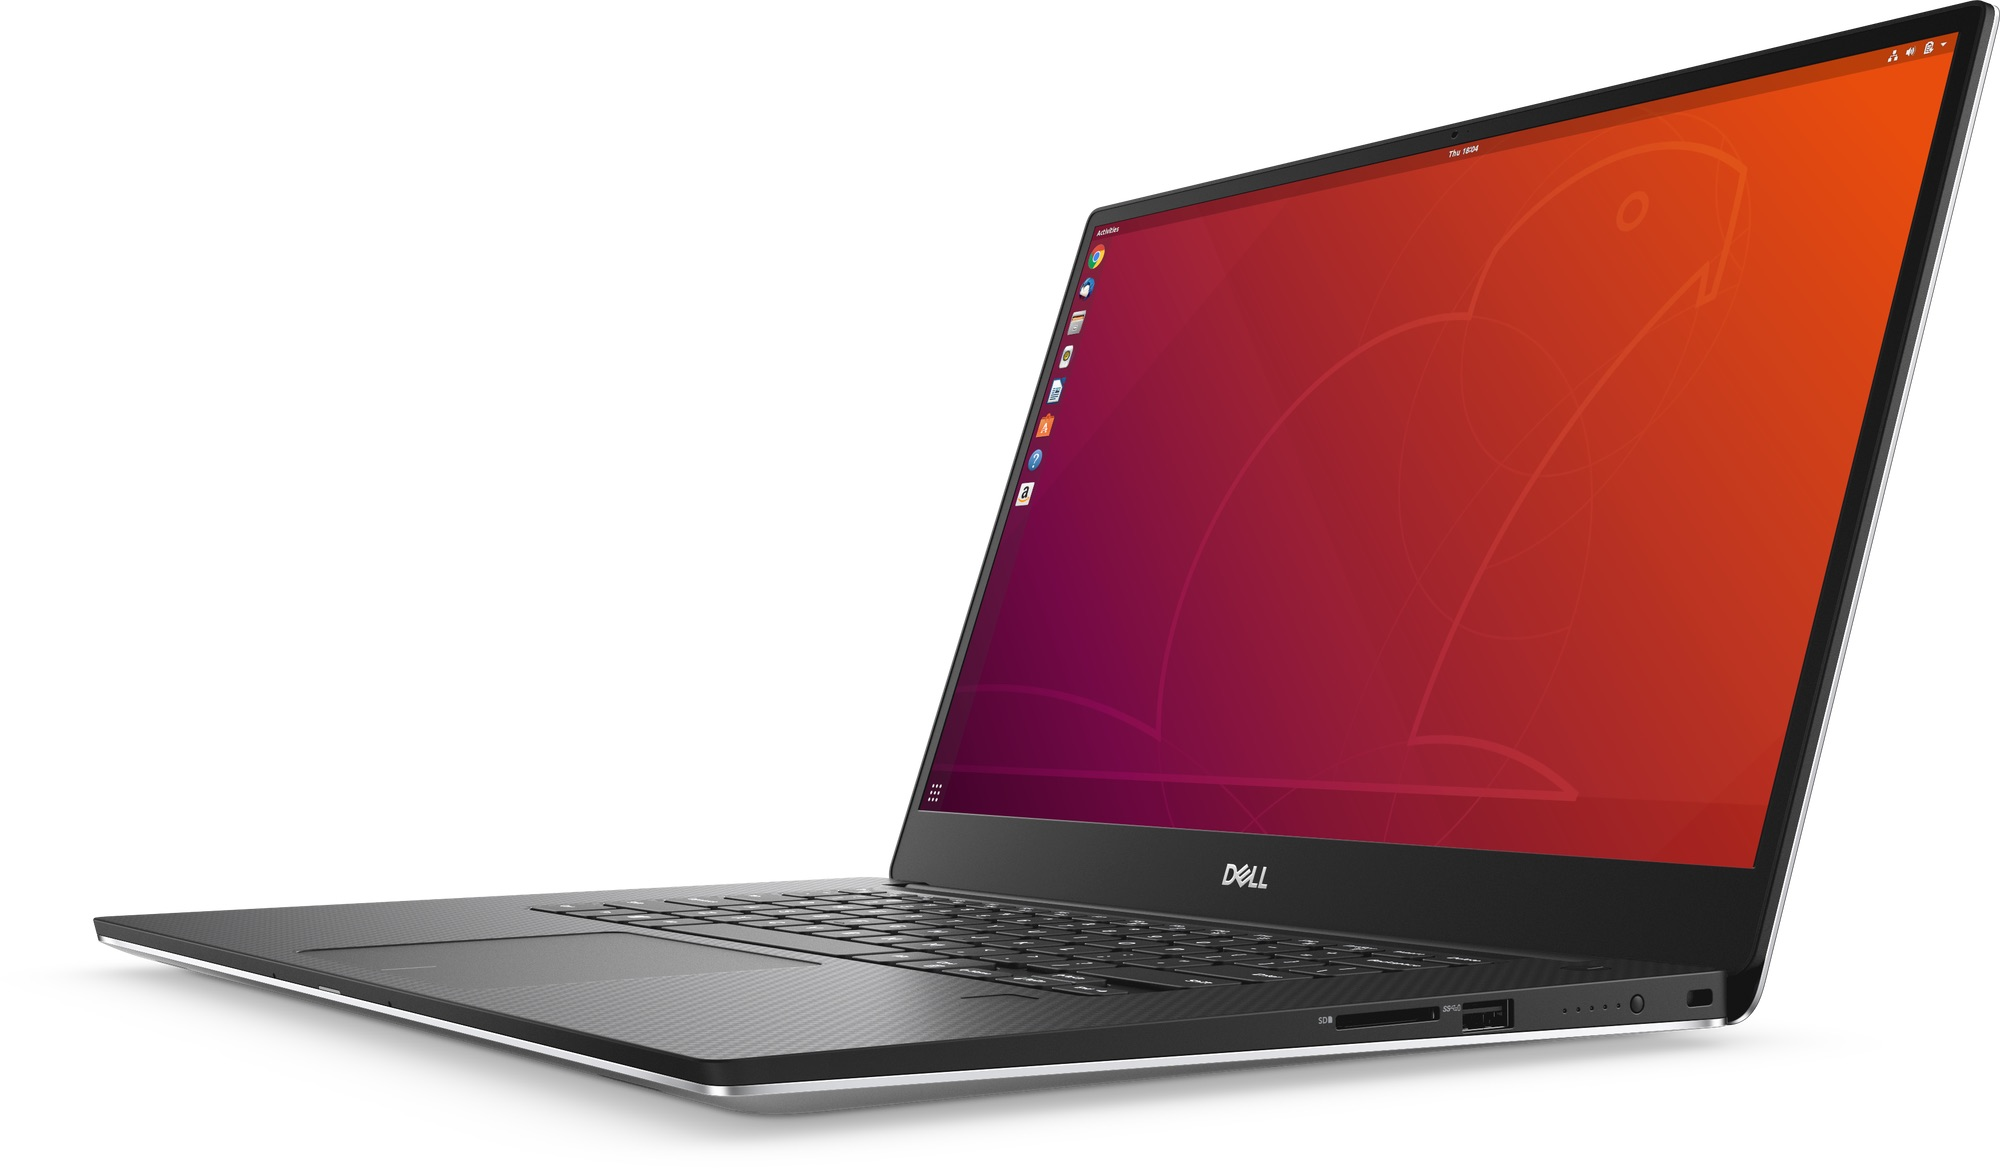 Dell Launches Three New Dell Precision Laptops Powered by Ubuntu Linux